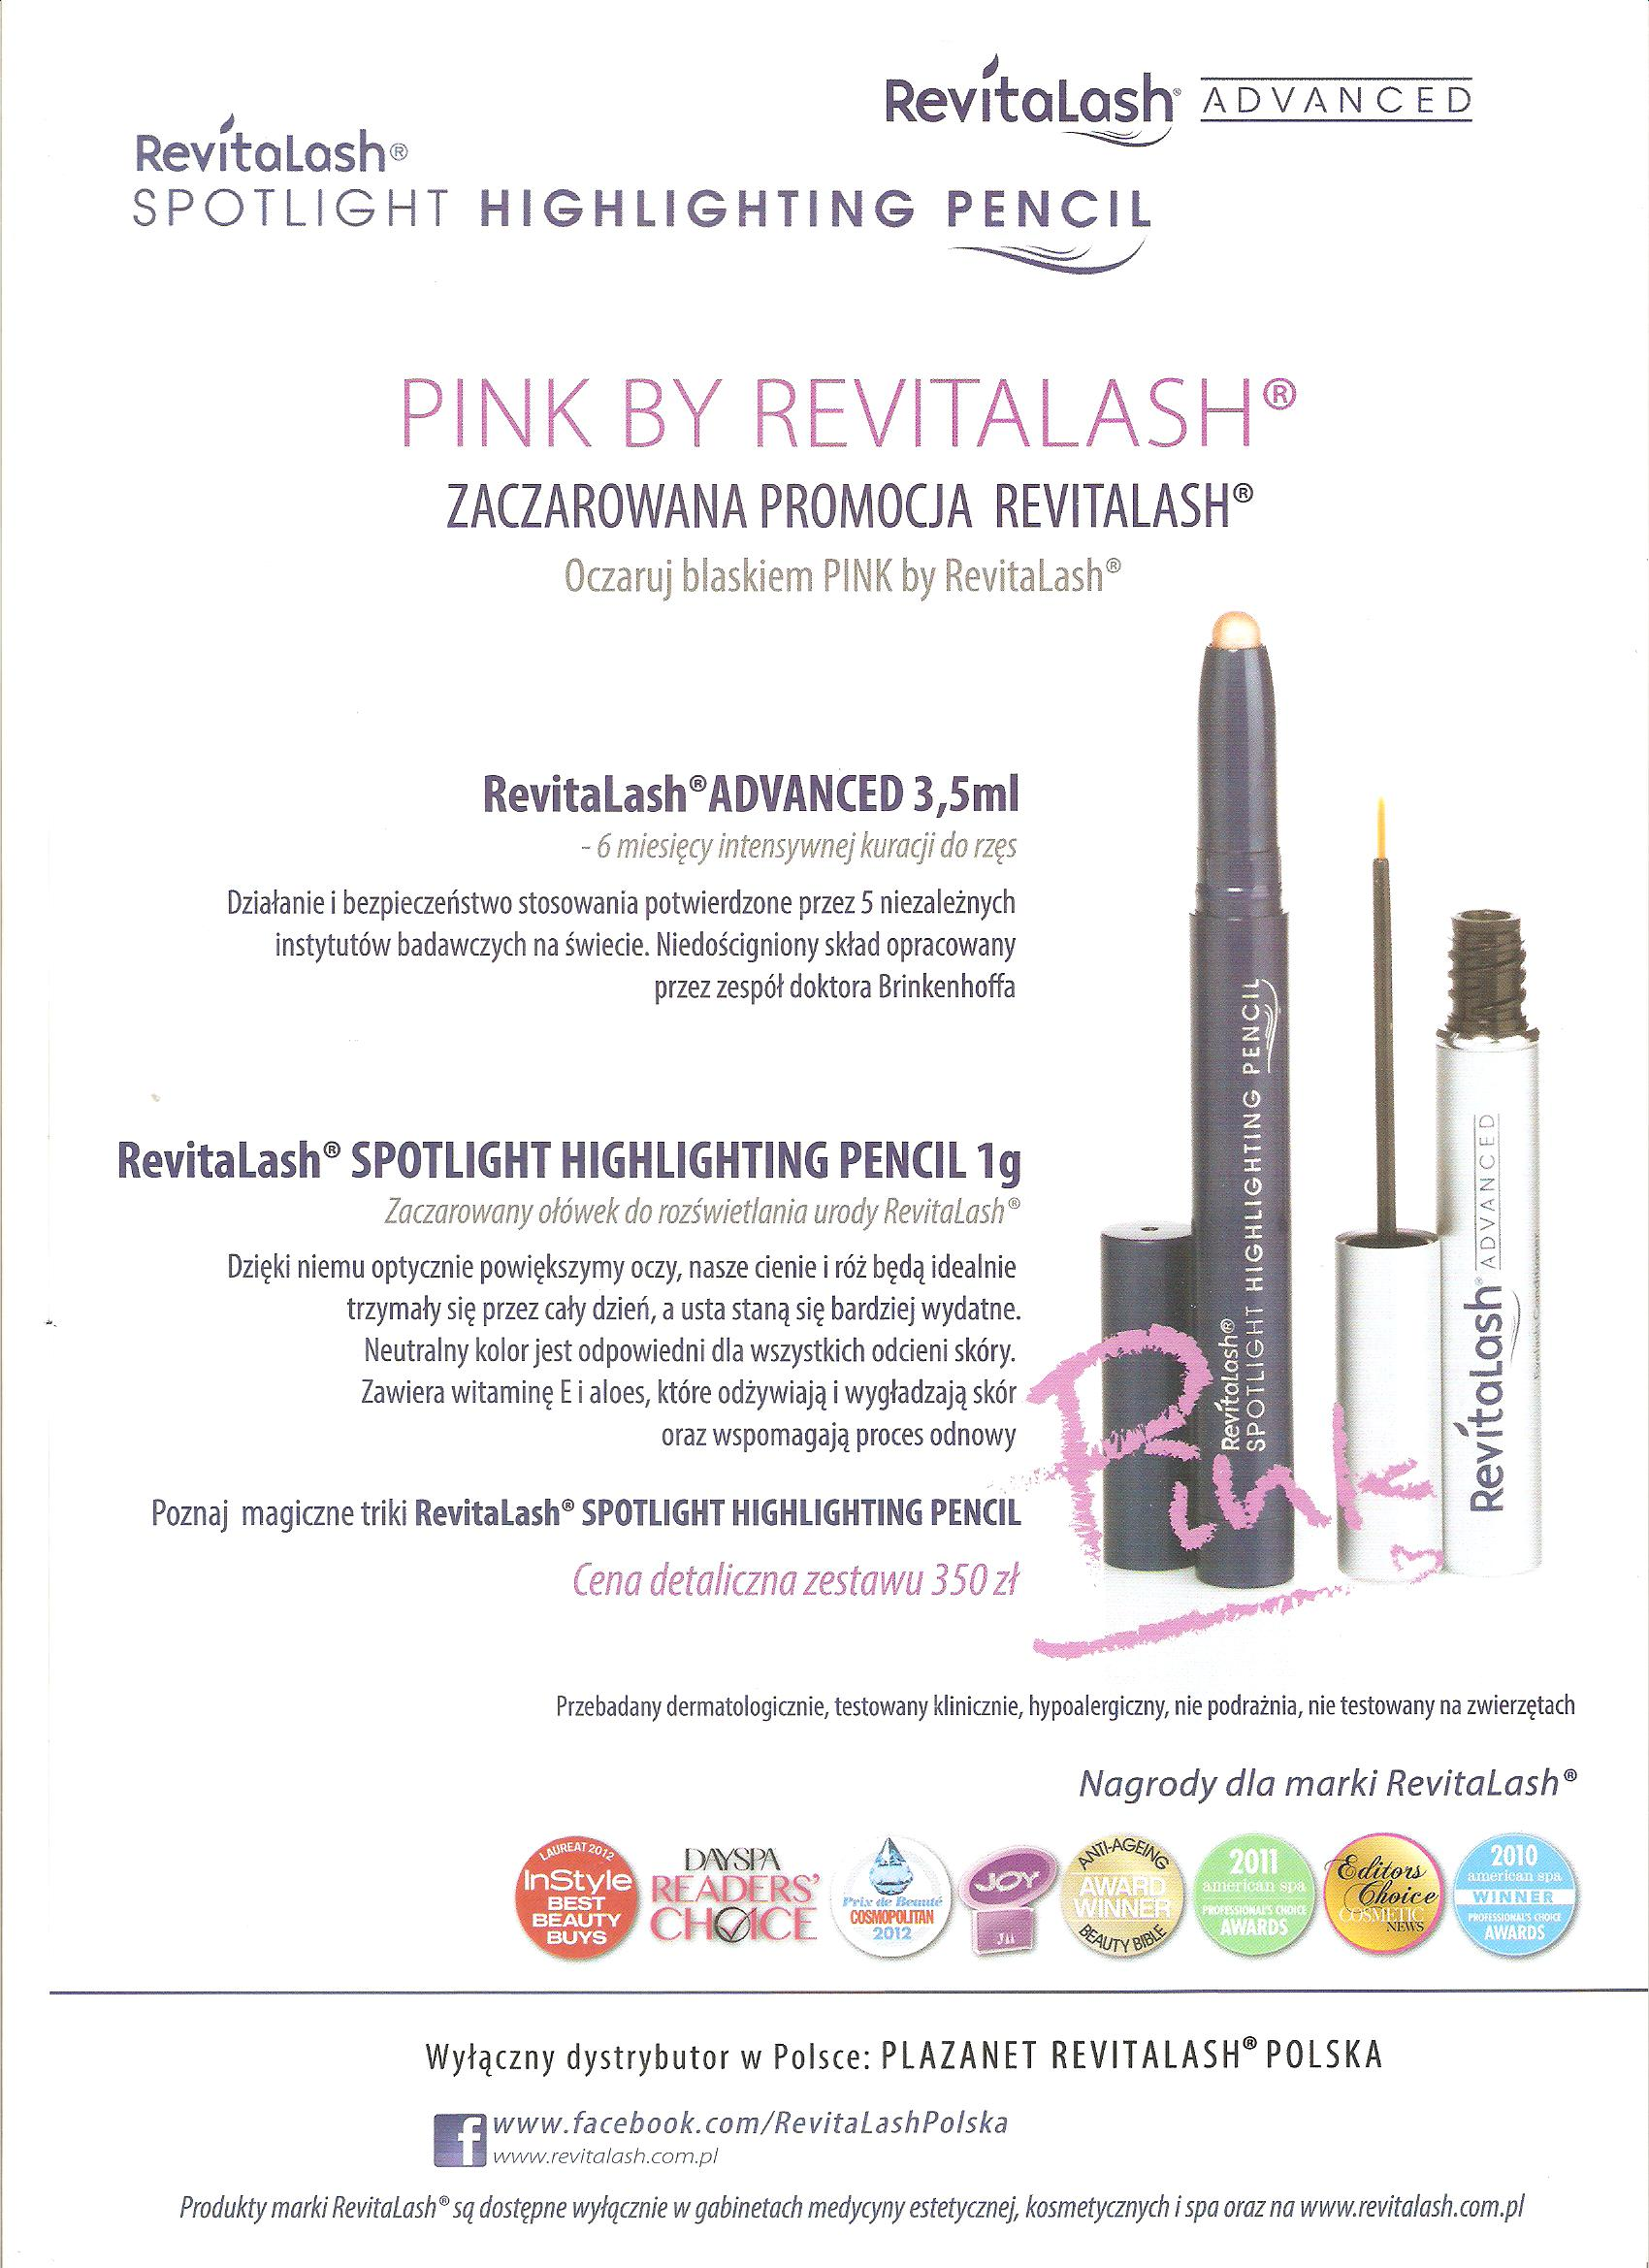 revitalash image commercial